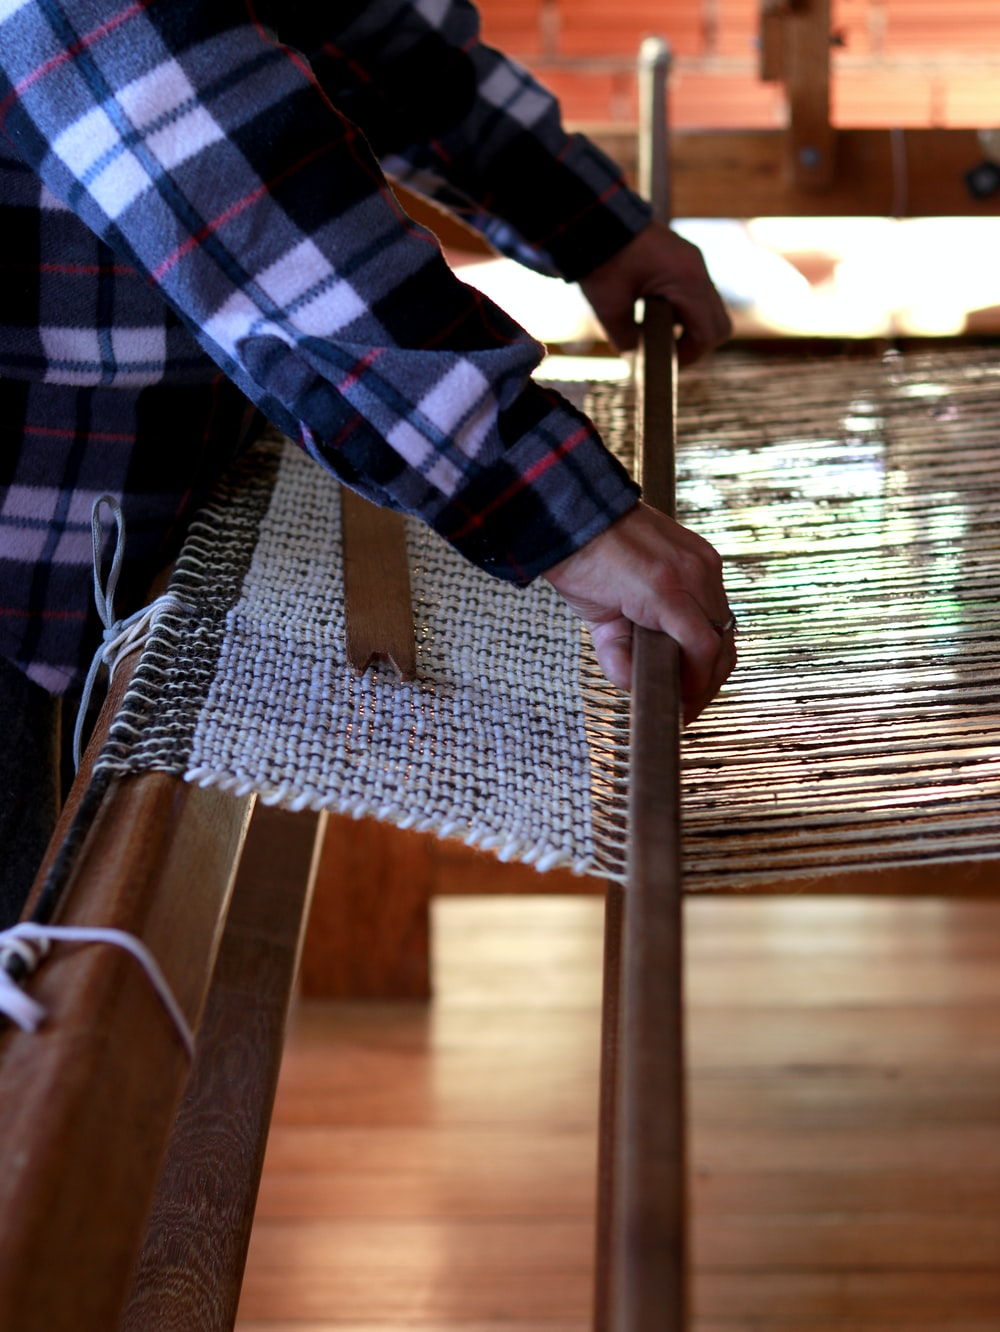 person weaving cloth